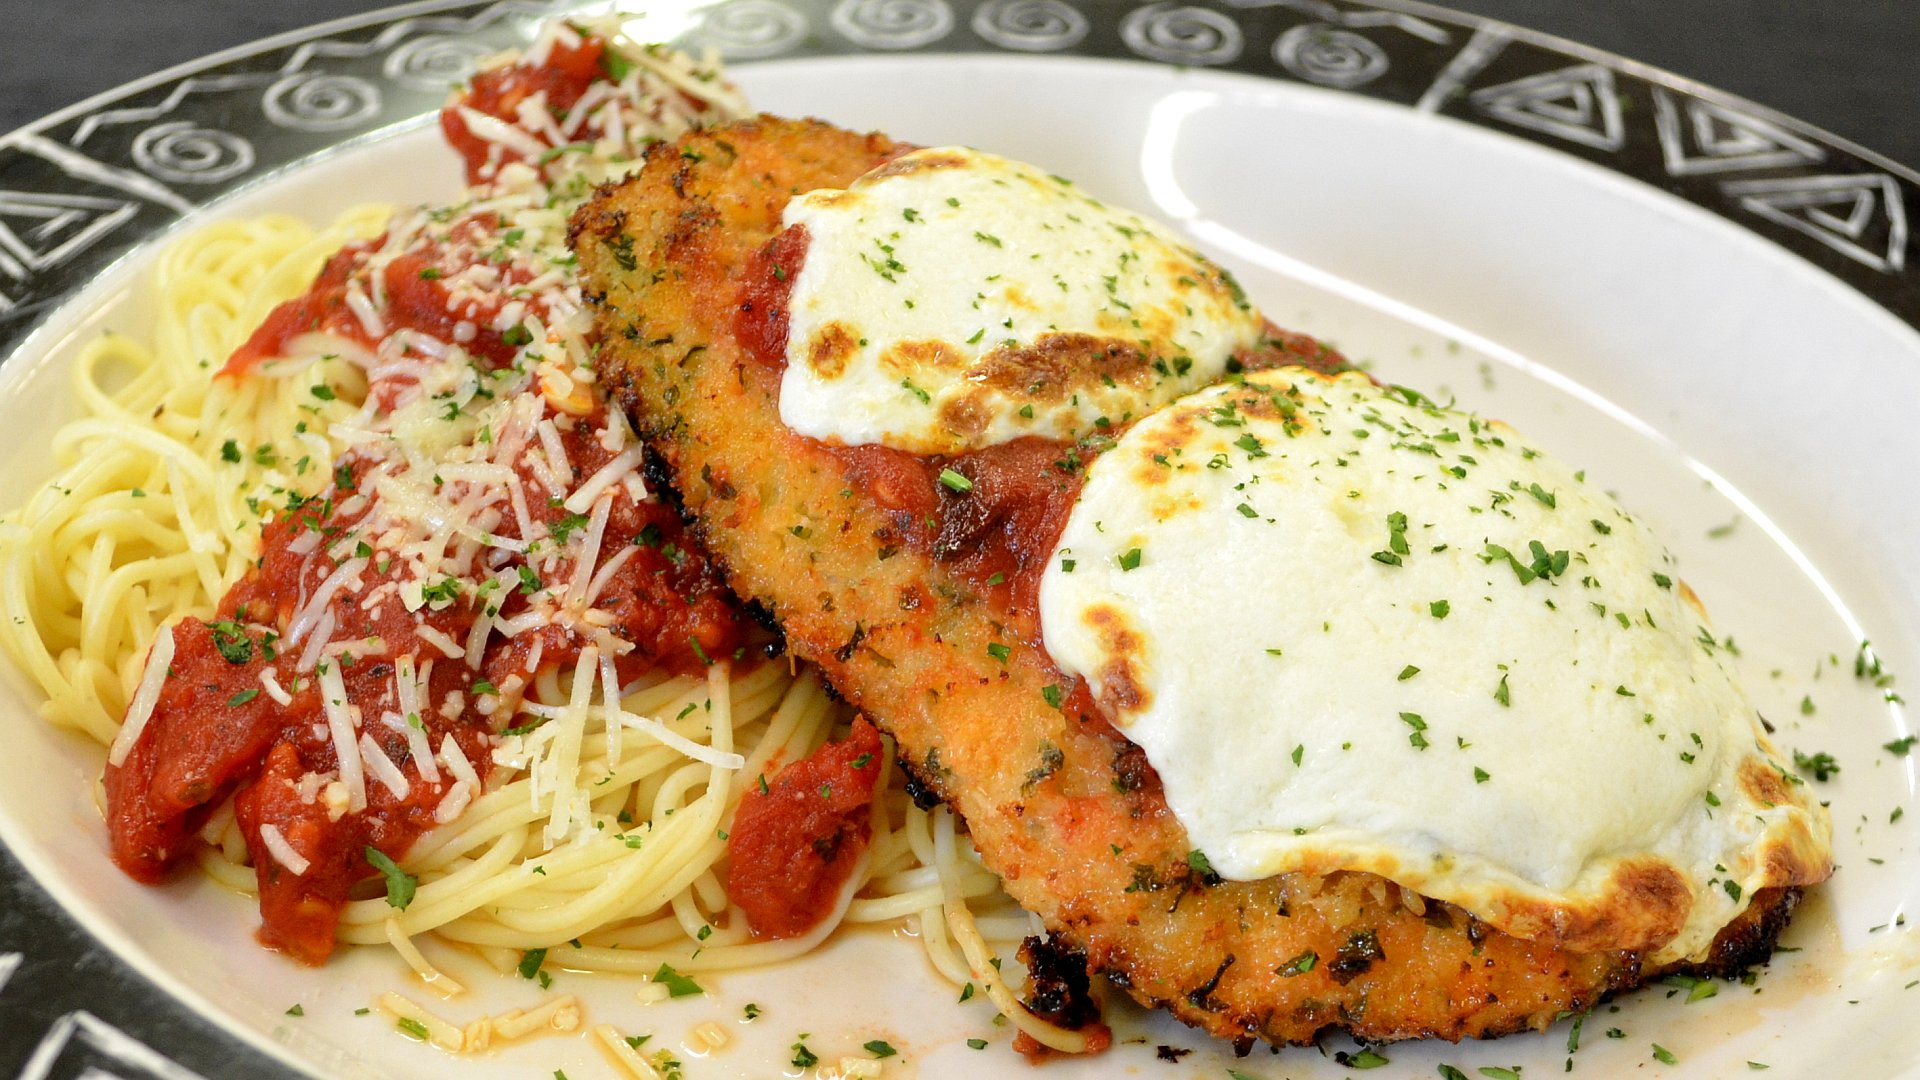 What-If-of-Hershey-Chicken-Parmigiana-1920px